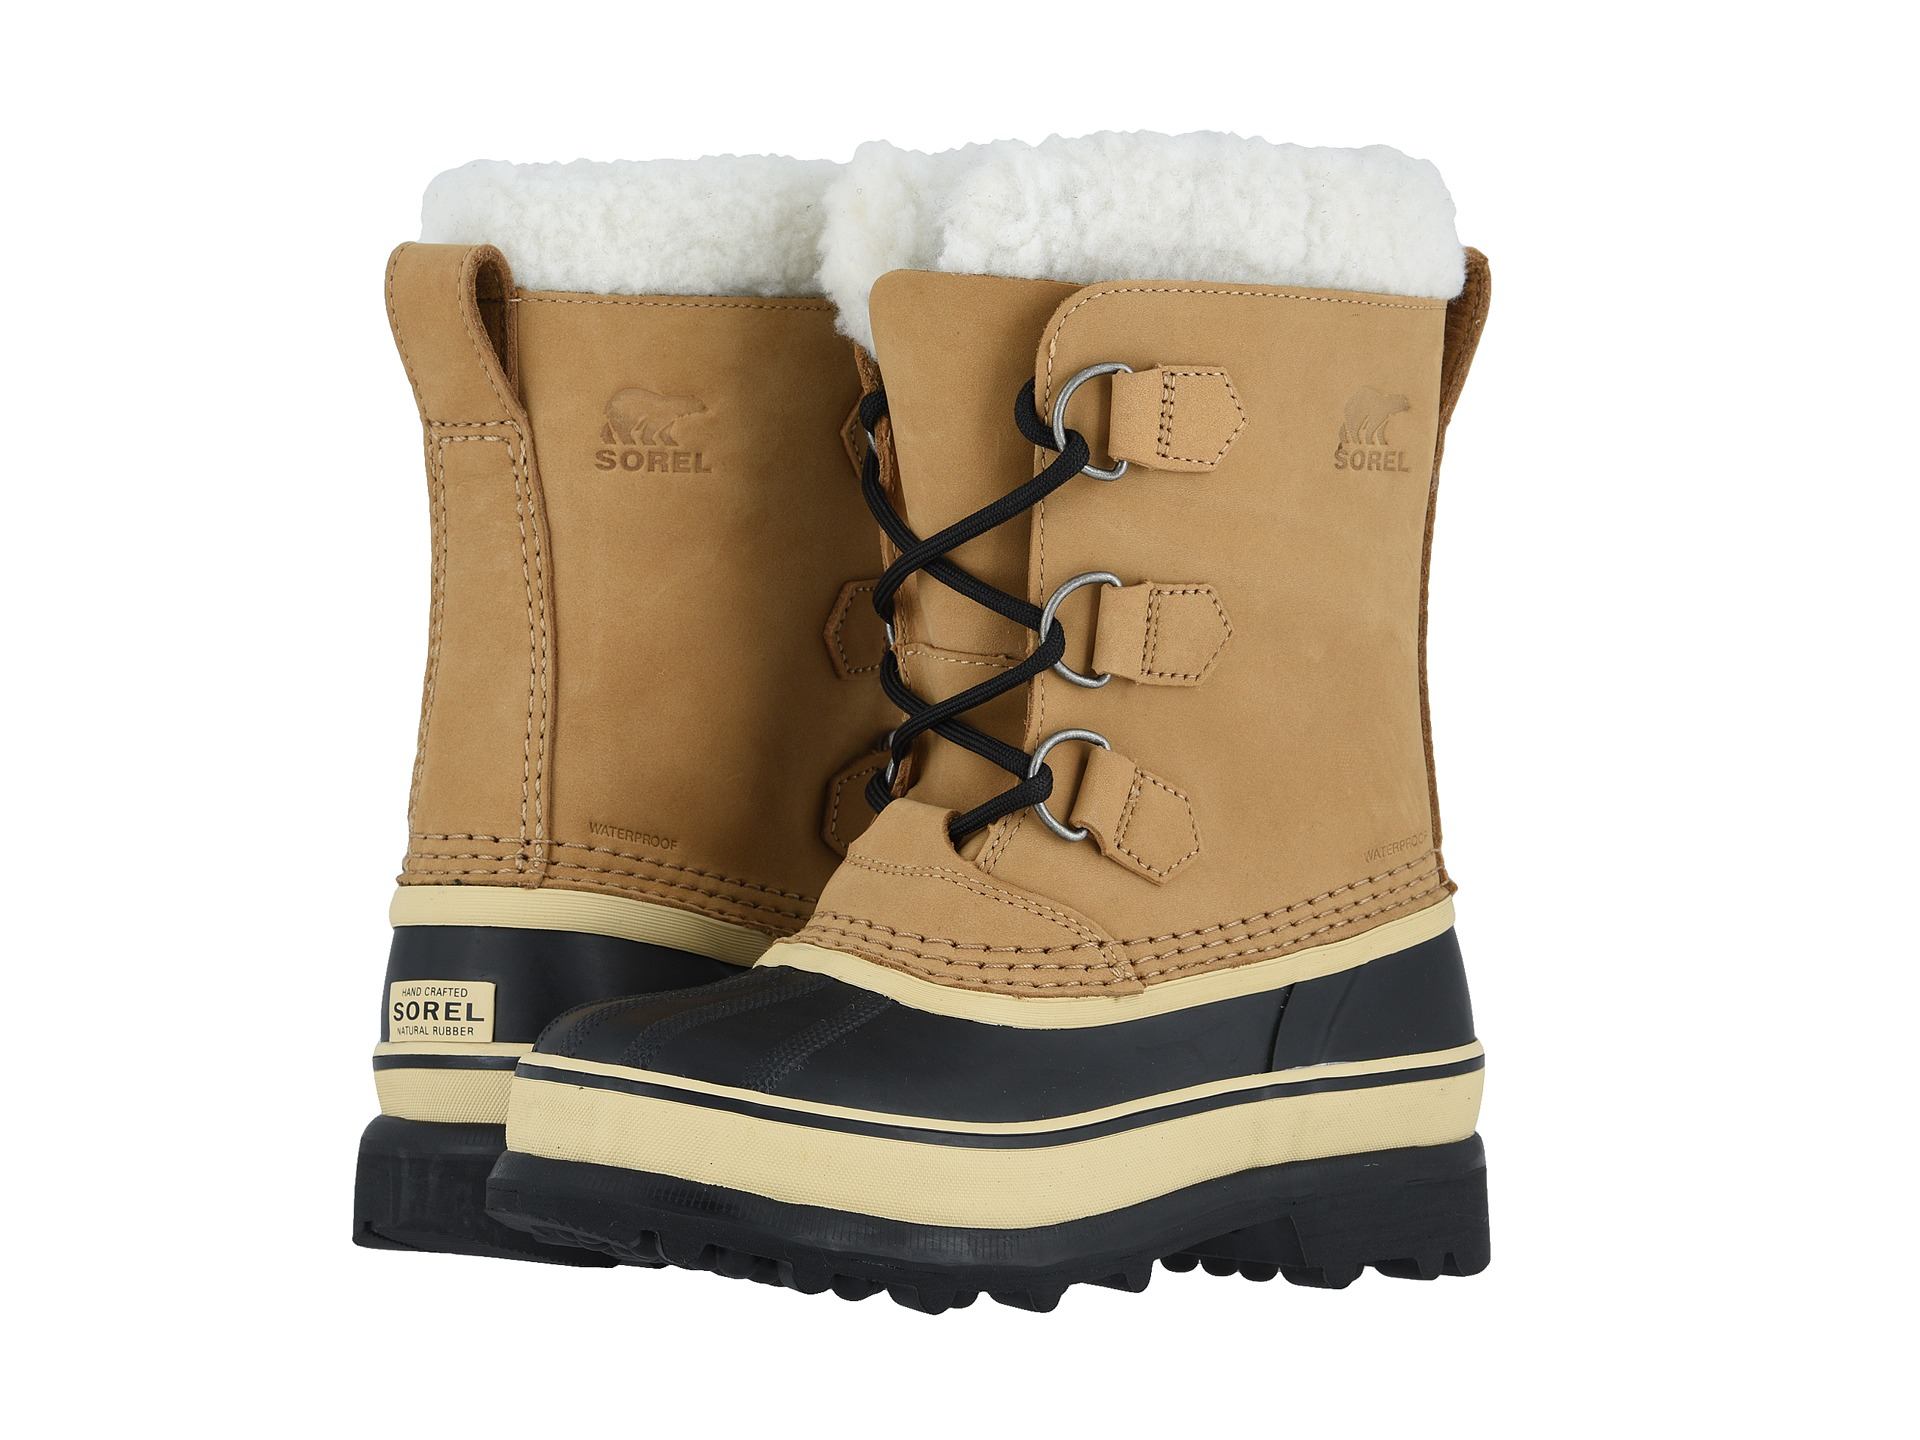 SOREL Kids Caribou™ (Little Kid/Big Kid) - Zappos.com Free ...